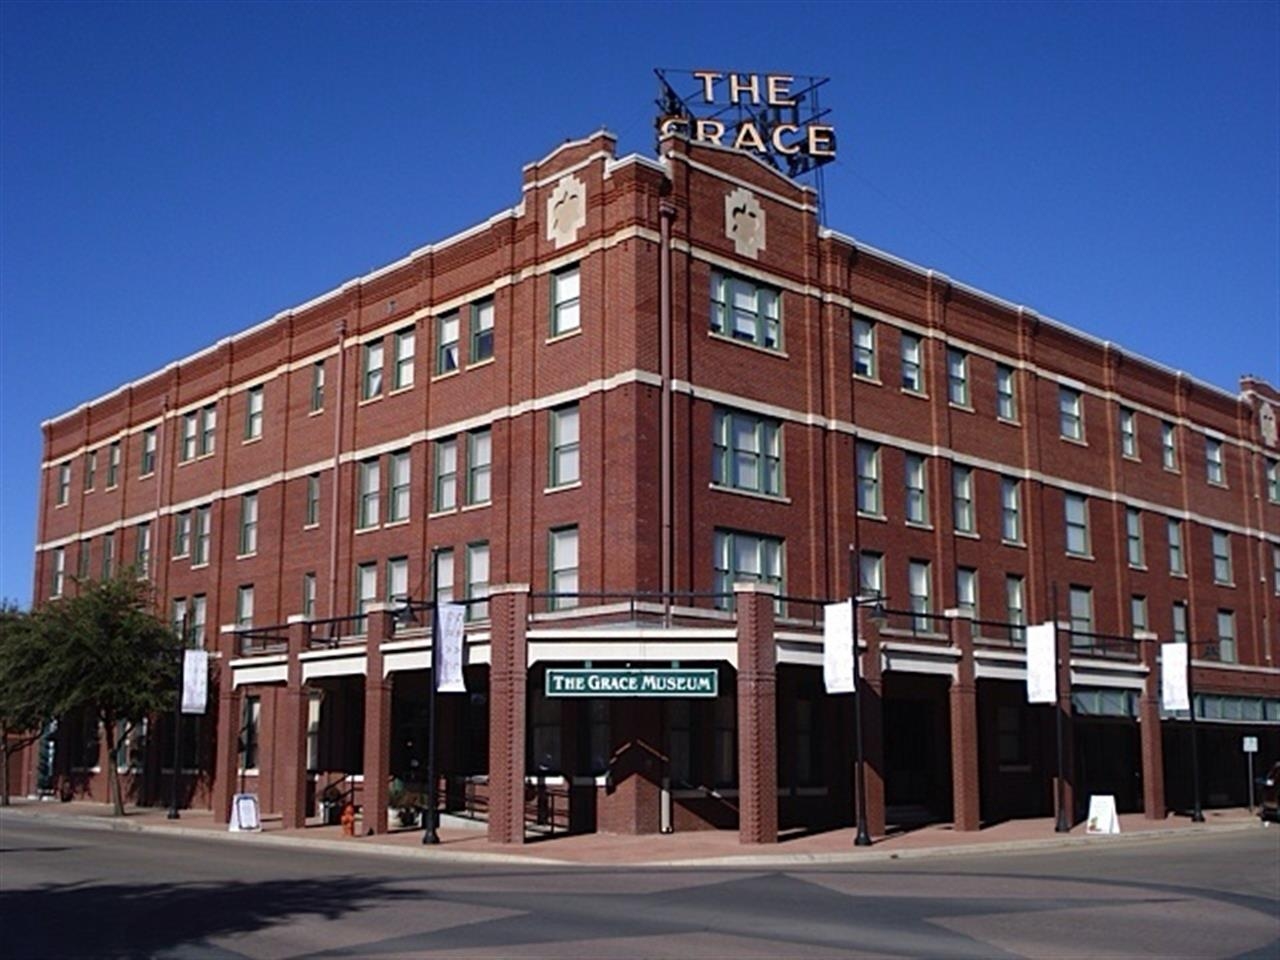 Abilene TX, The Grace Museum, Downtown Abilene, Historic Abilene